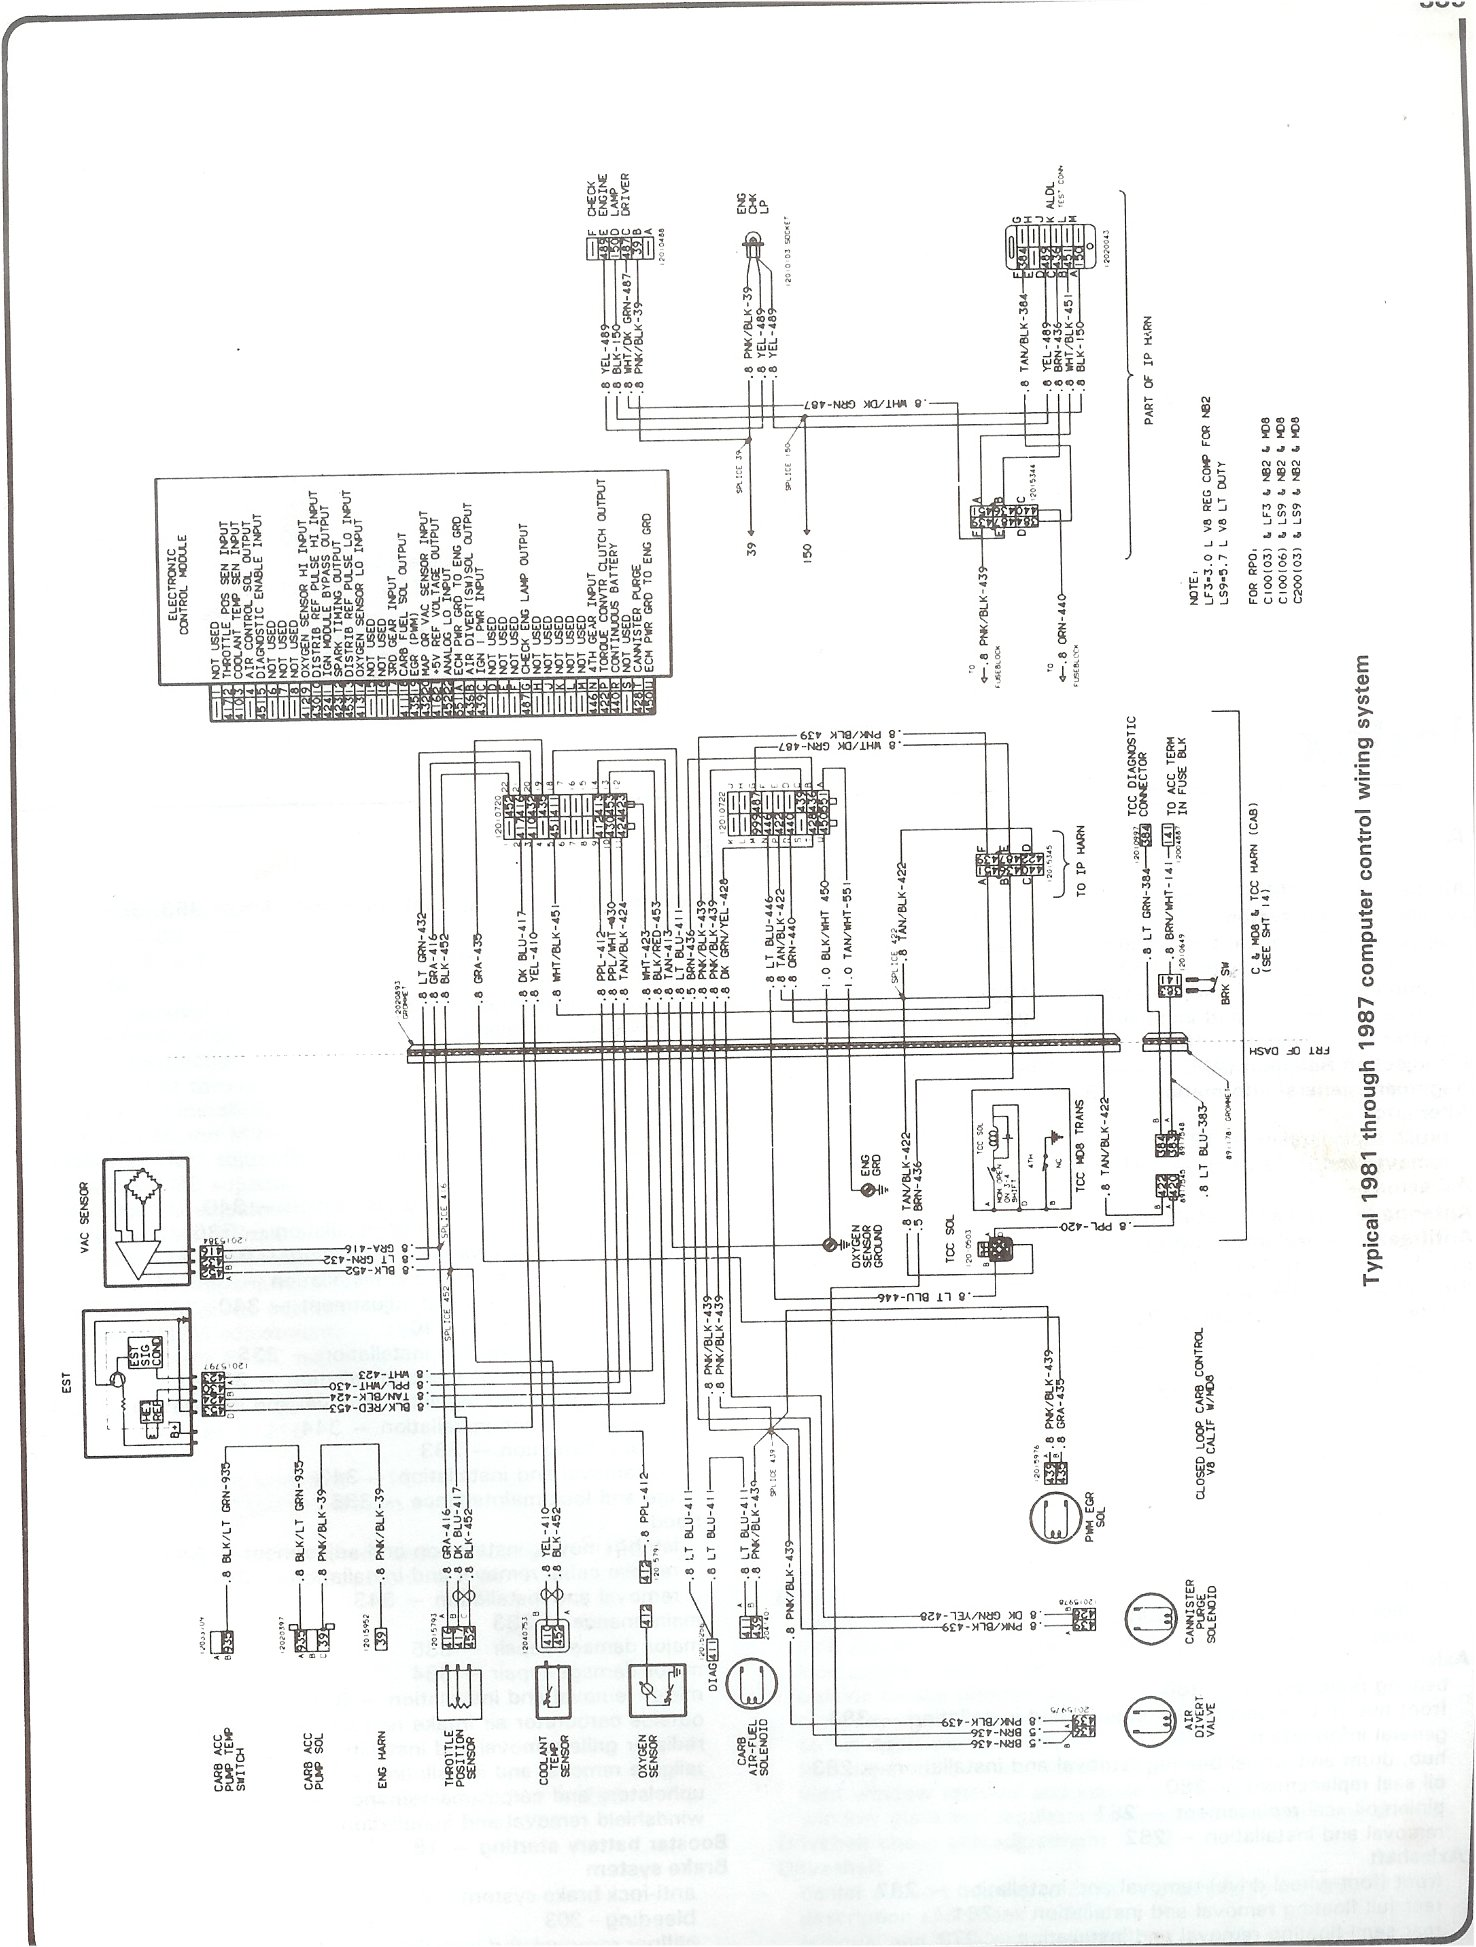 81 87_computer_control_wiring complete 73 87 wiring diagrams 1986 chevy truck wiper motor wiring diagram at panicattacktreatment.co